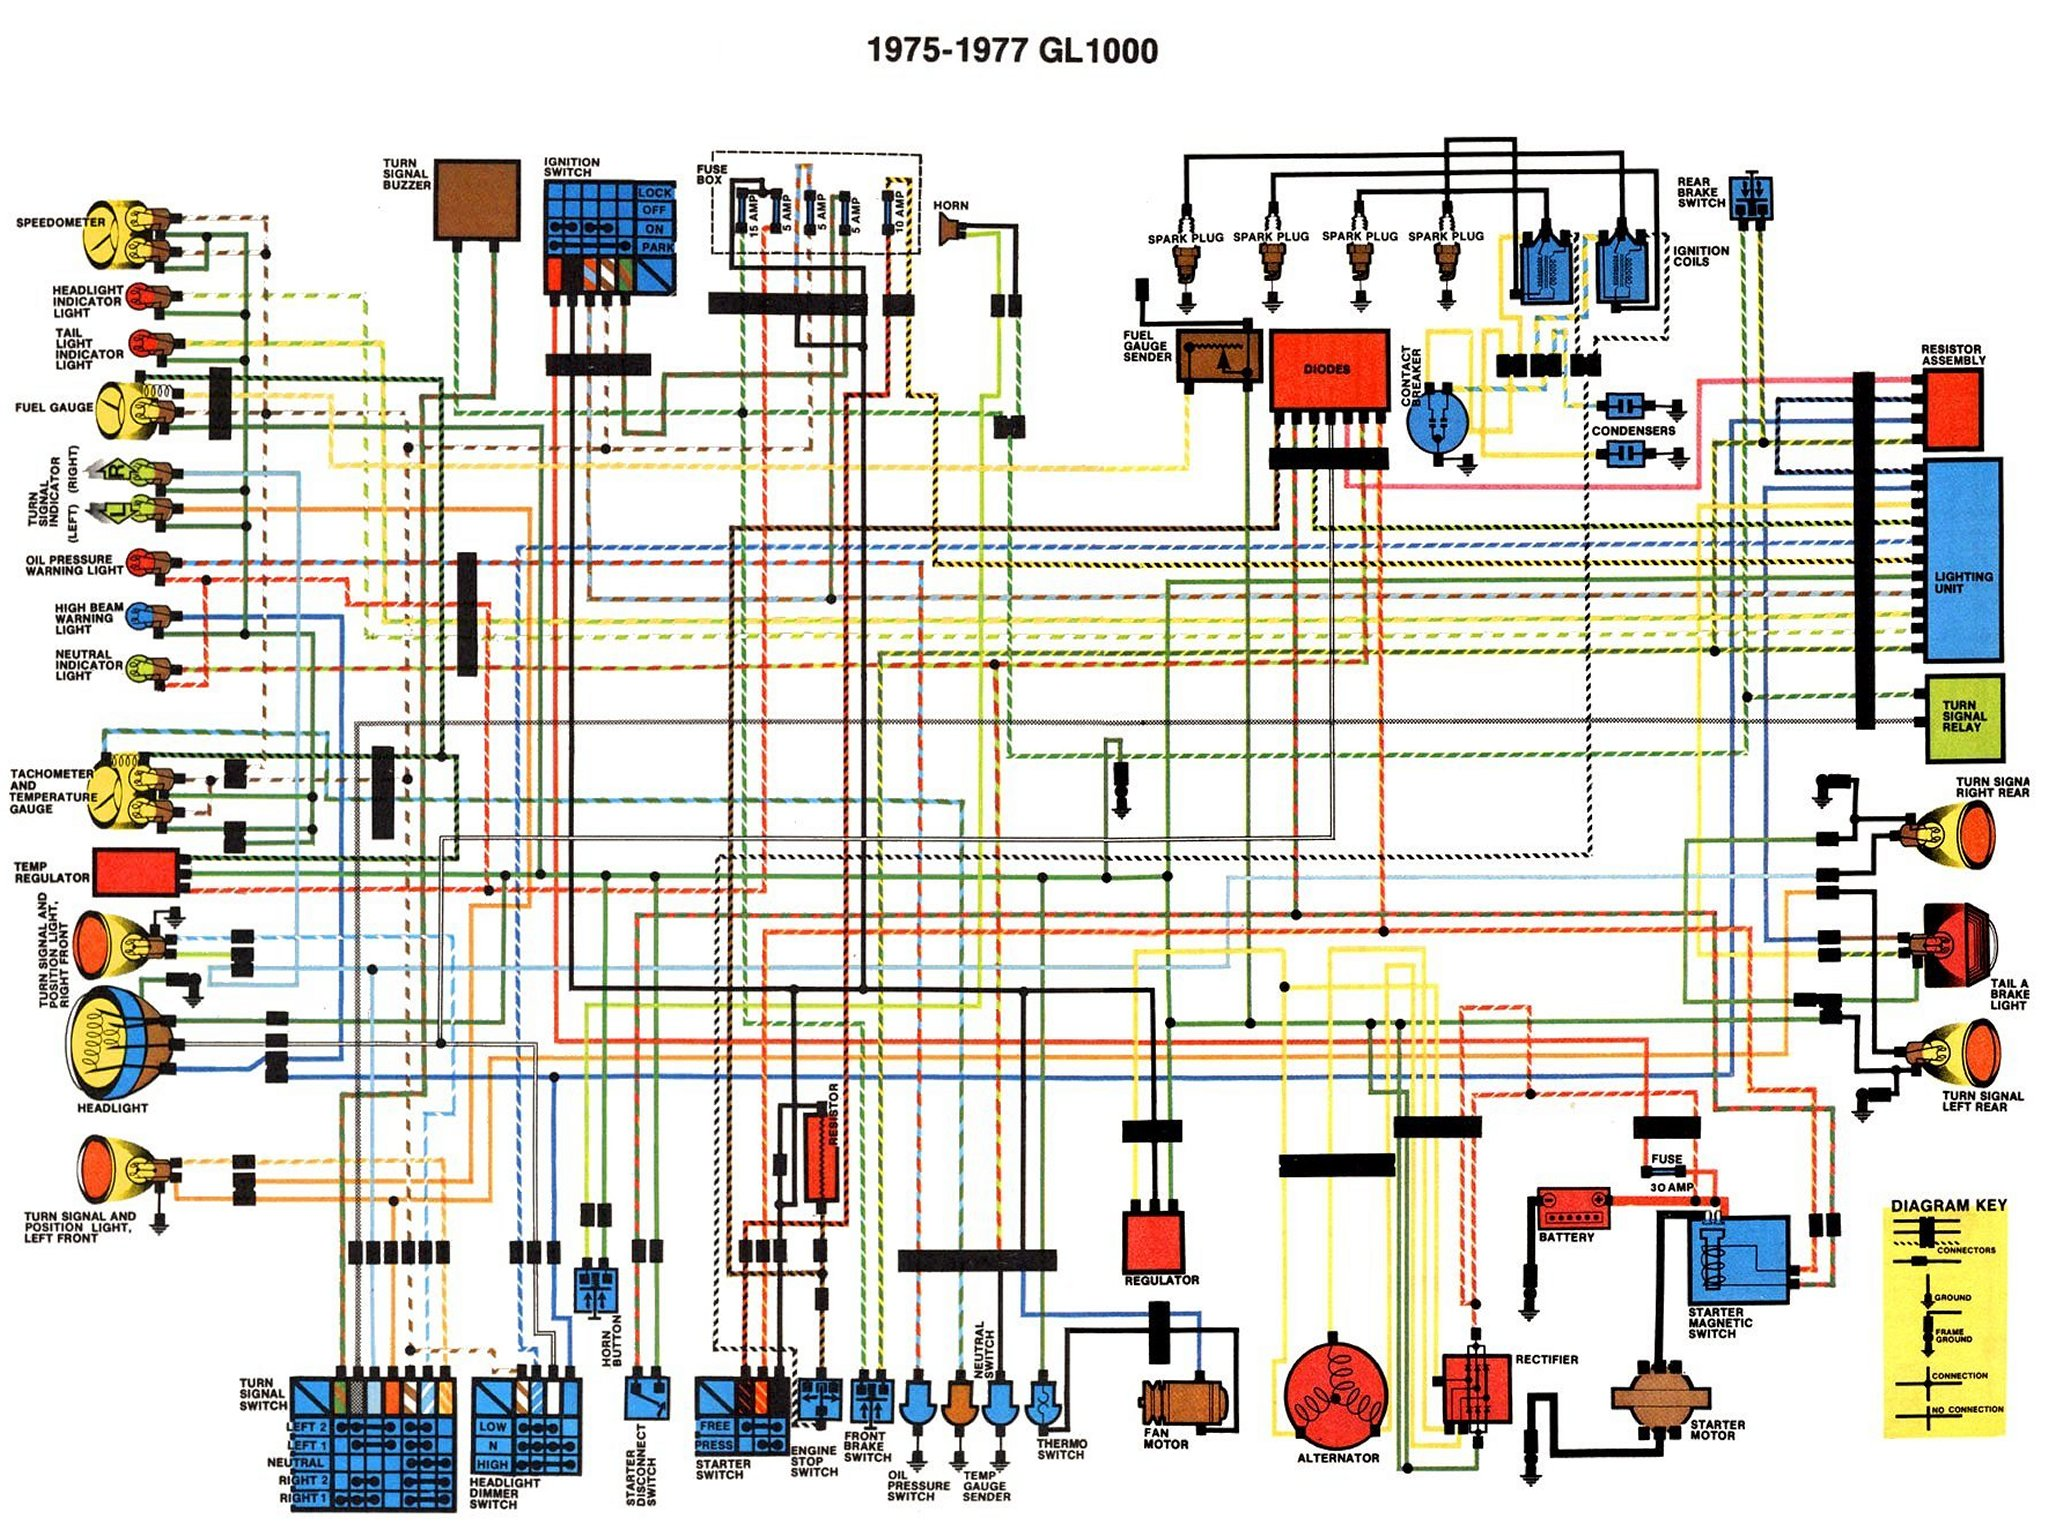 75 Corvette Ac Wire Diagram 27 Wiring Images 1976 Diagrams 1975 77 Gl1000 Colour Schematicm1389594806 78 280z U2022